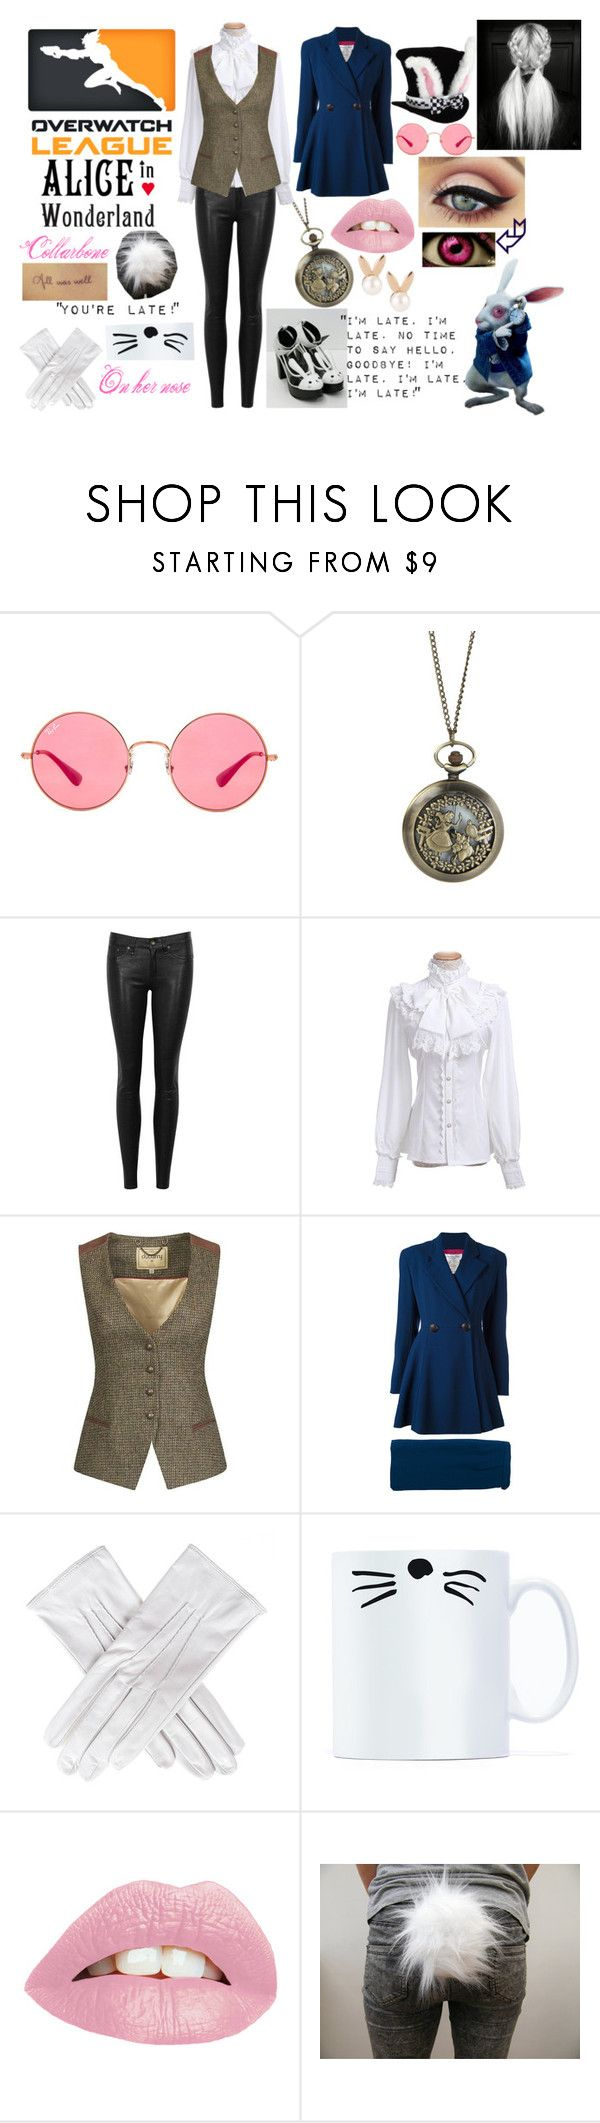 """Overwatch - White Rabbit"" by thecaptain101 ❤ liked on Polyvore featuring Ray-Ban, Disney, rag & bone/JEAN, DUBARRY, Christian Dior, Black and Aamaya by Priyanka"